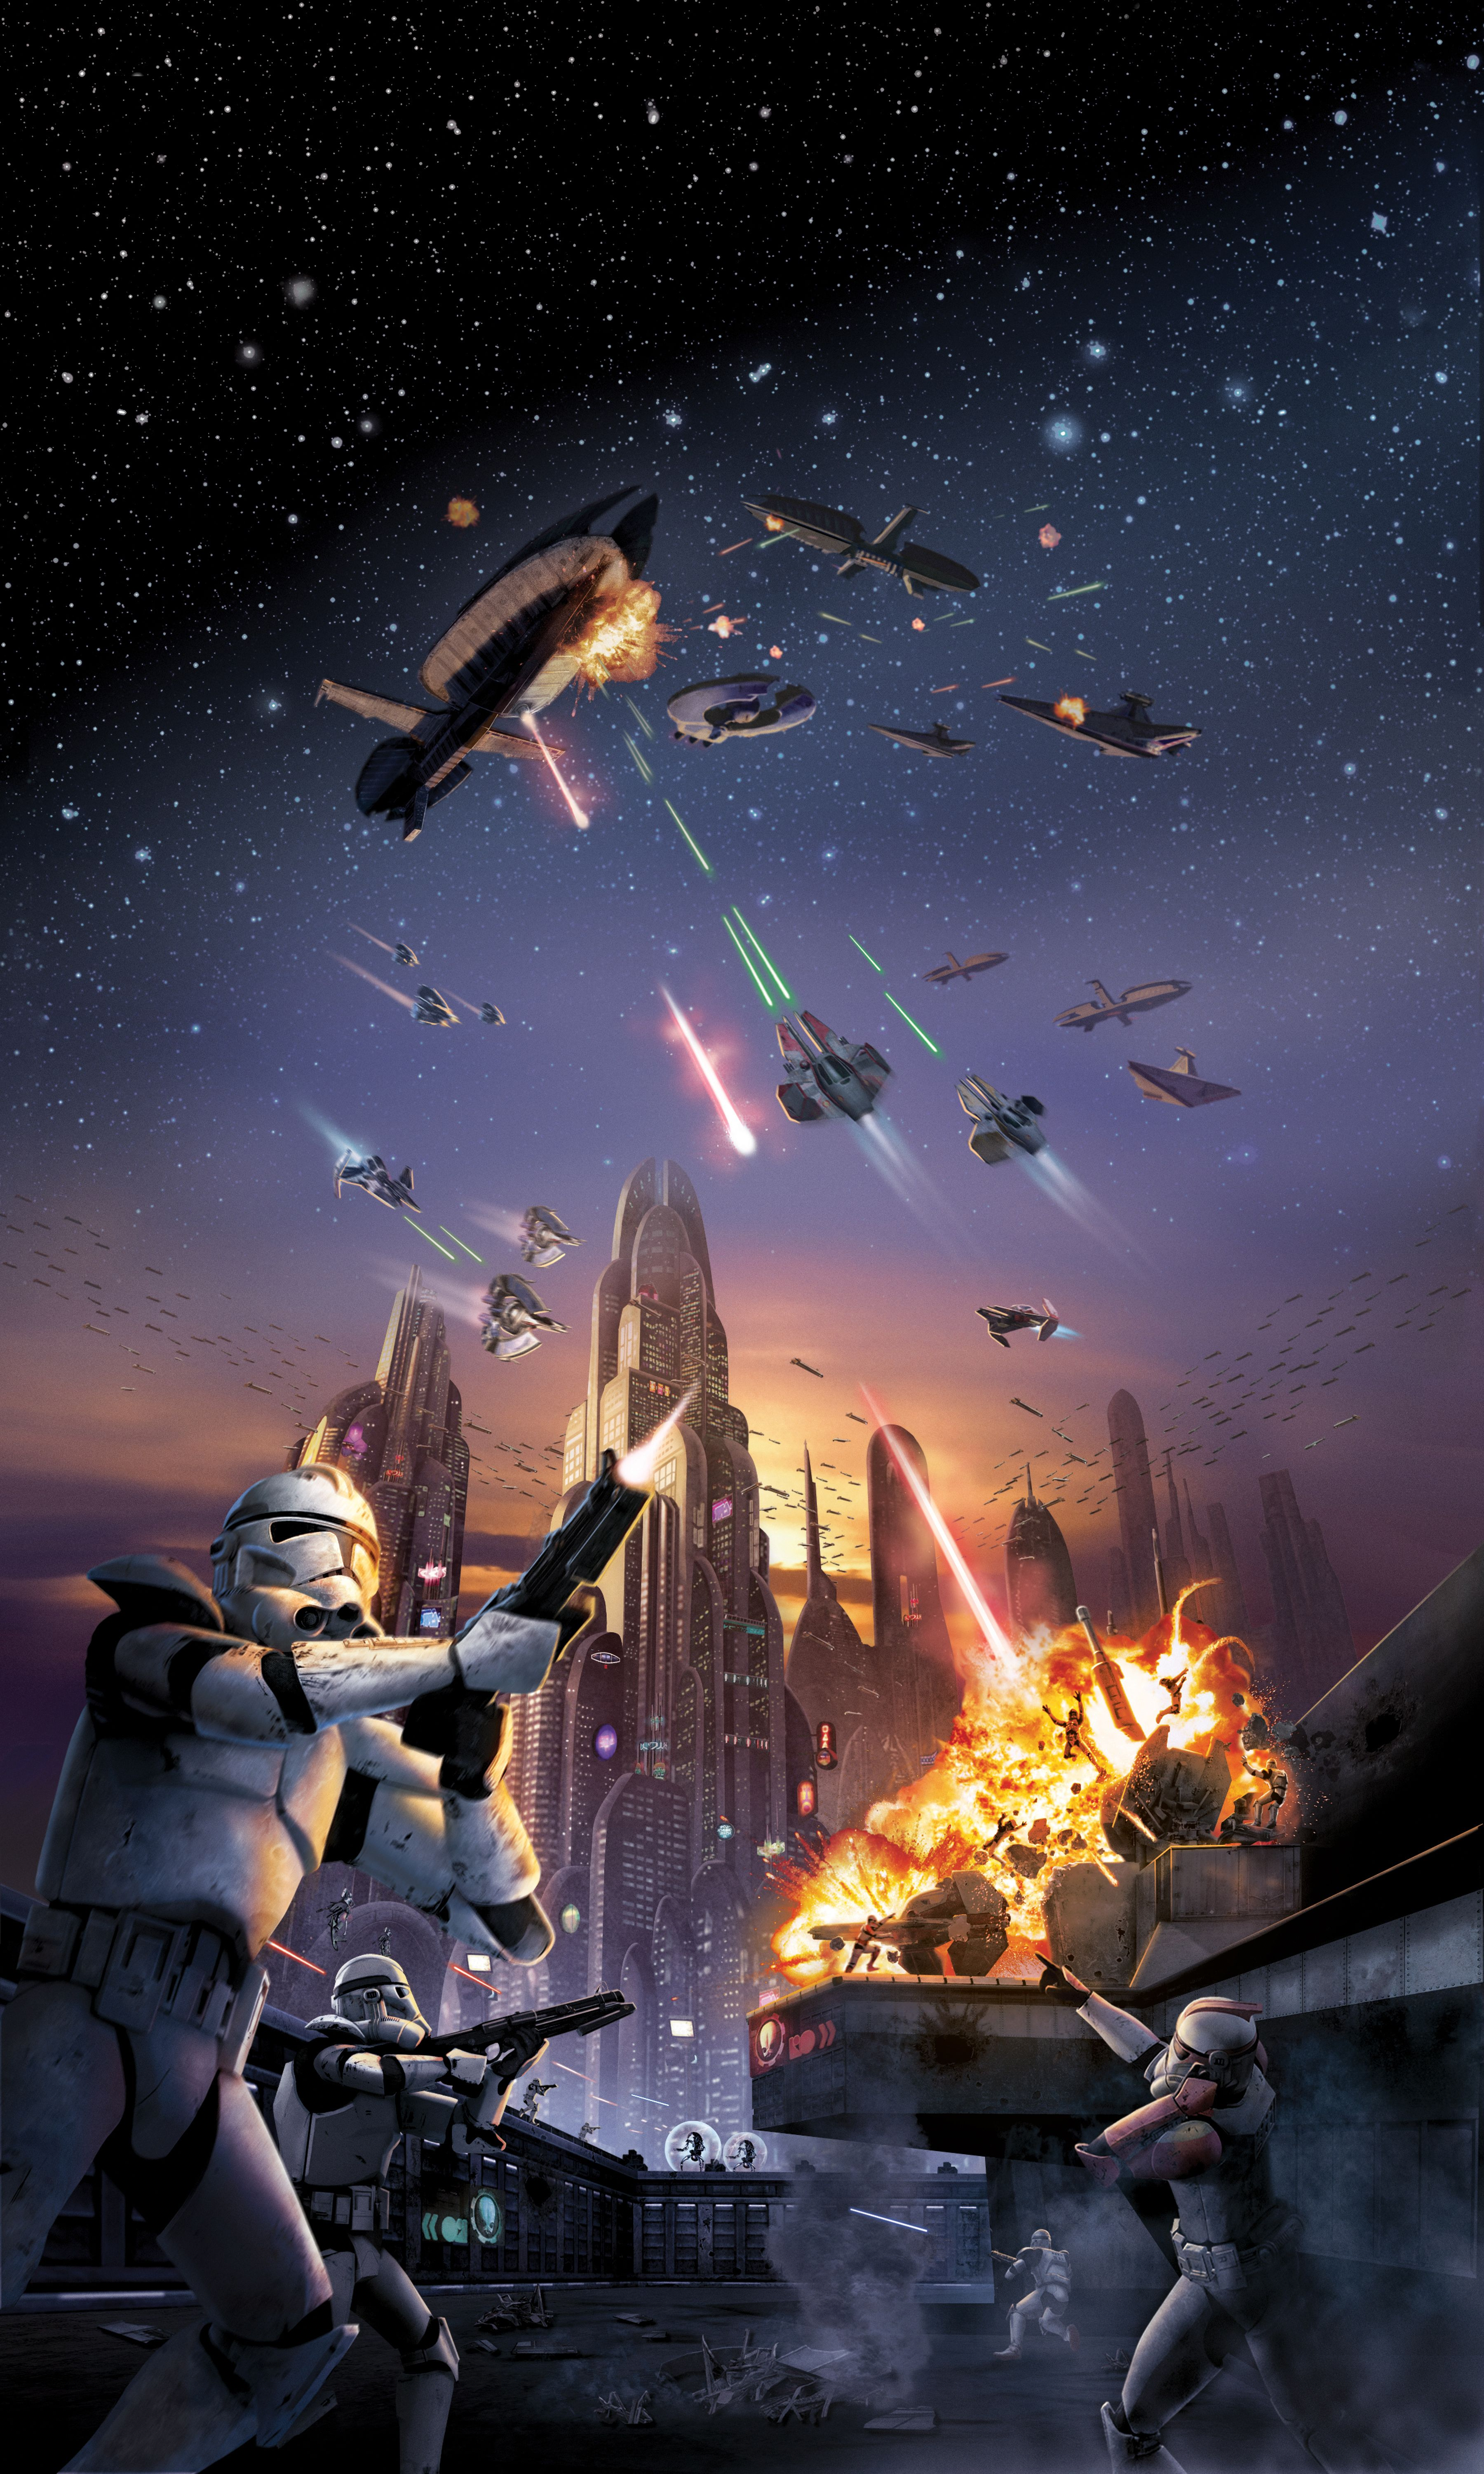 Star Wars Background Star Wars Background Star Wars Art Star Wars Pictures